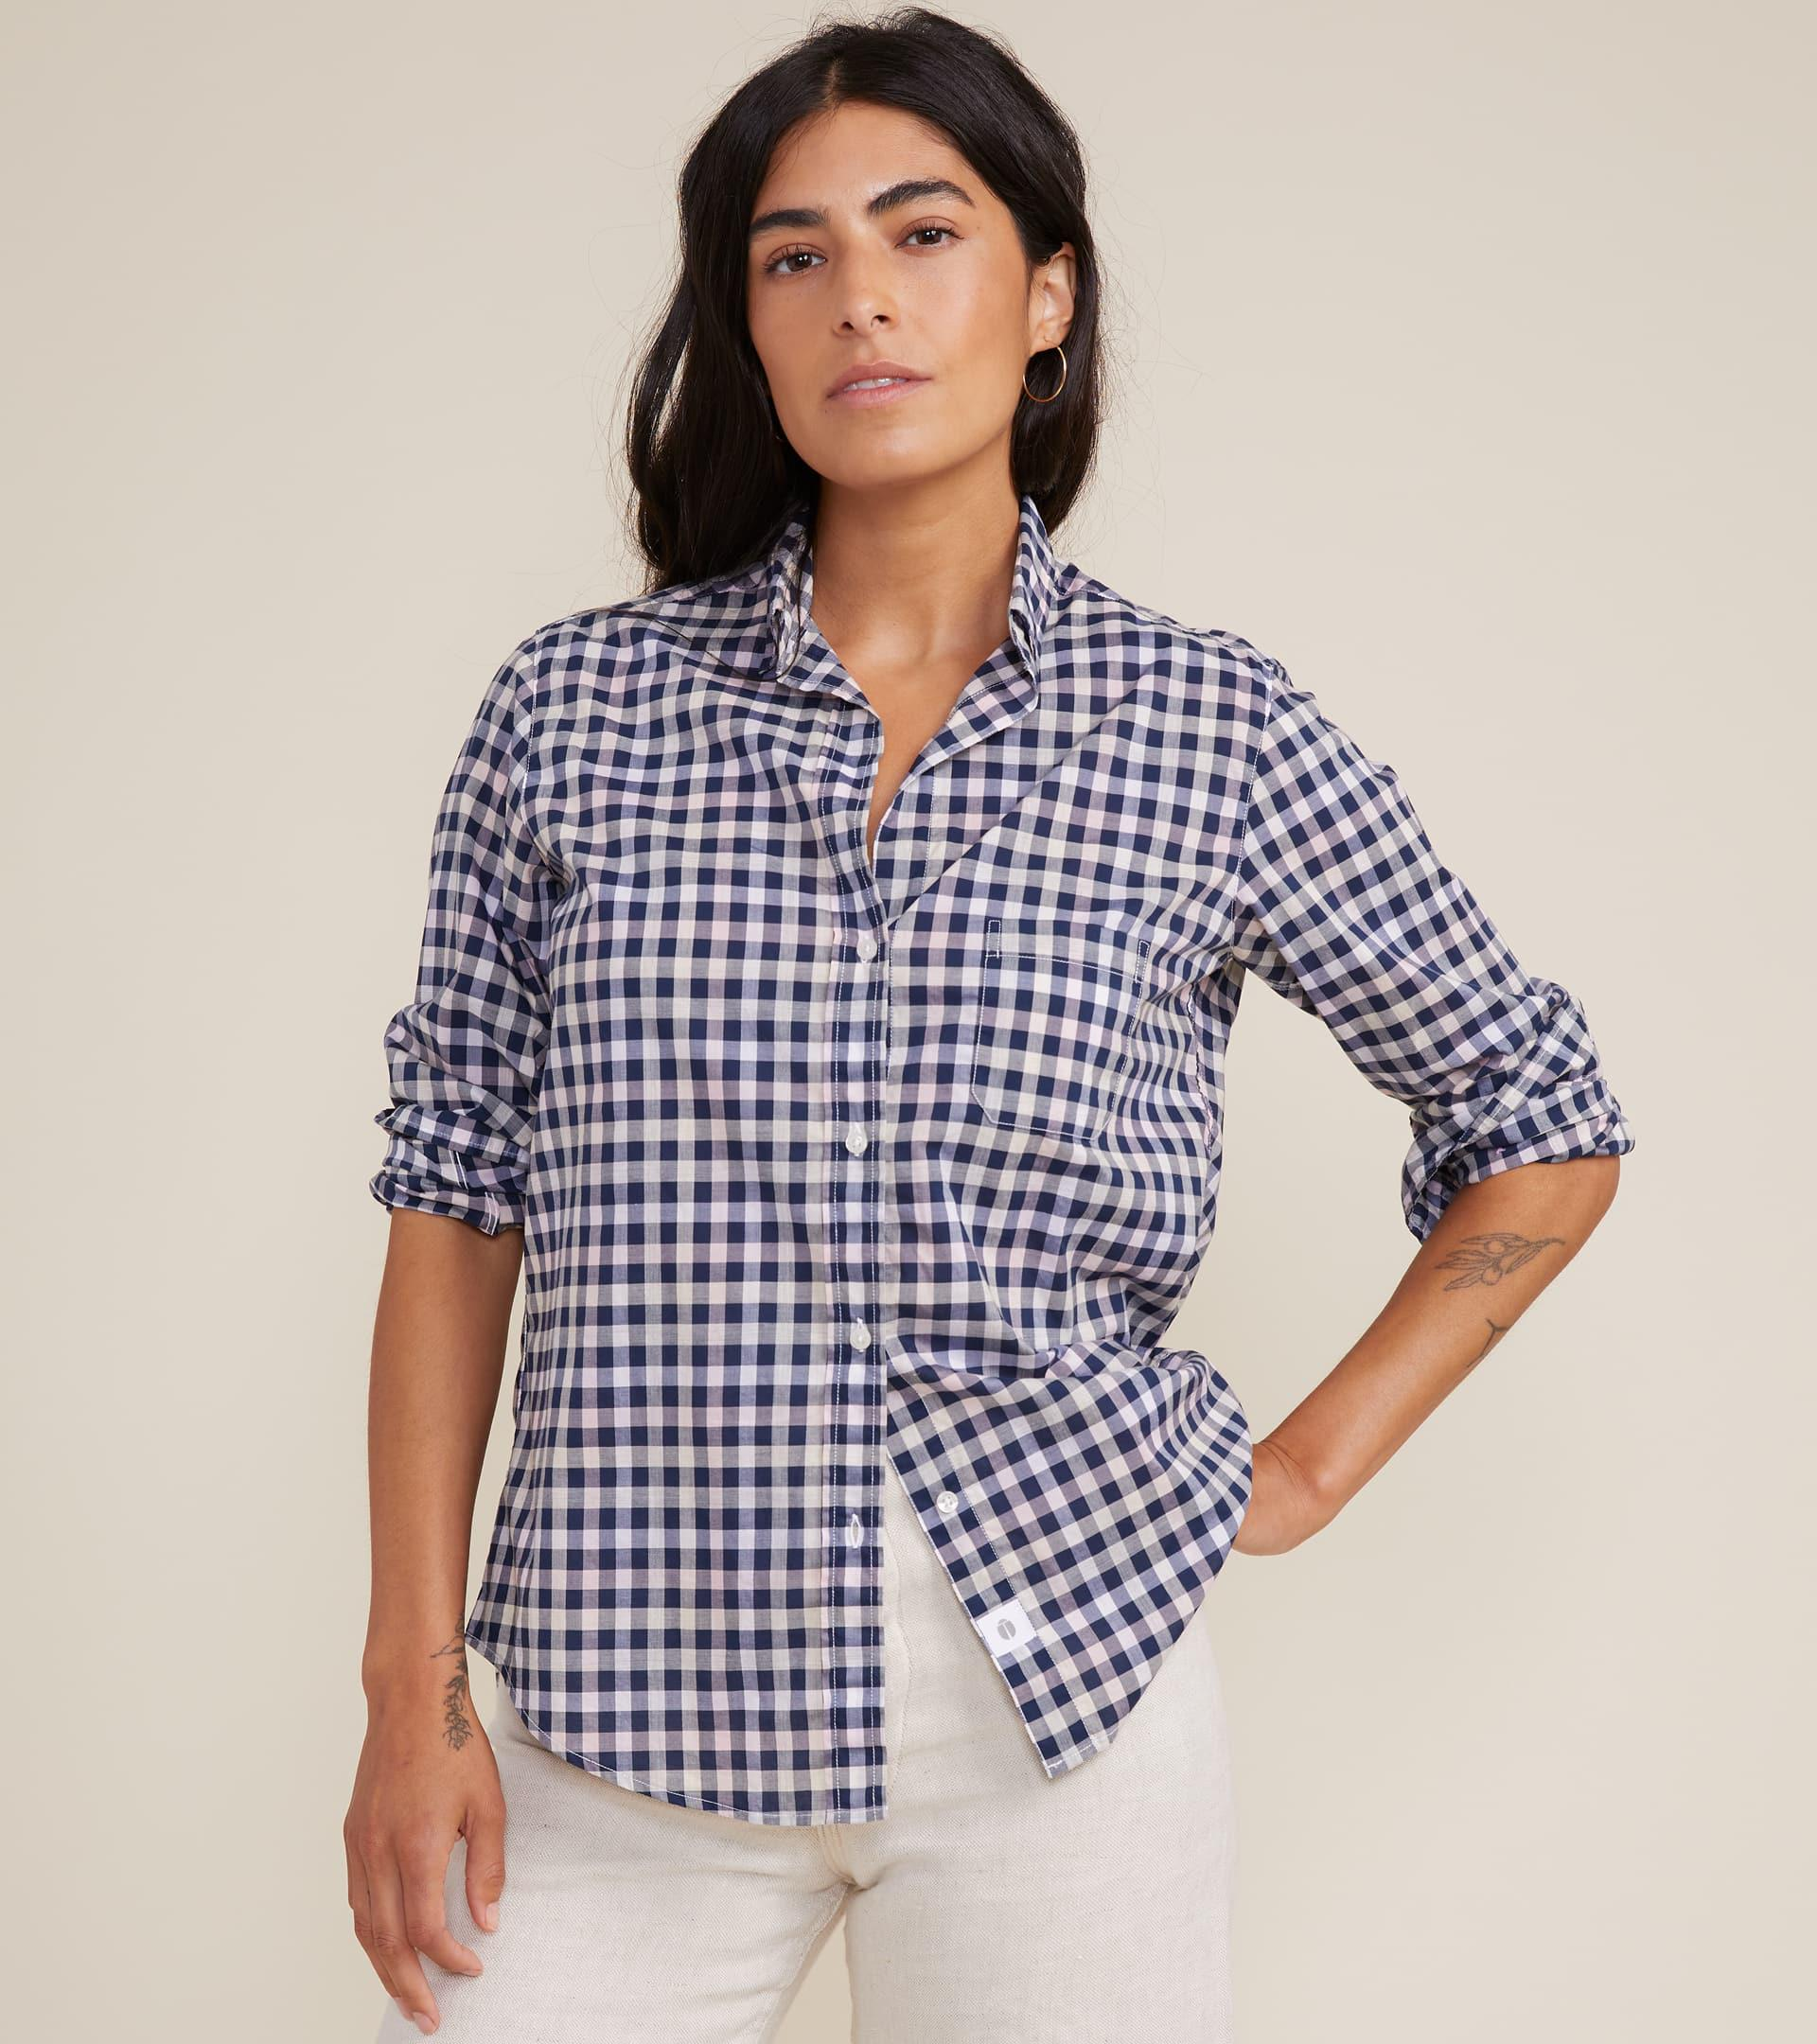 The Hero Button-Up Shirt in Multi Check, Cool Cotton Final Sale